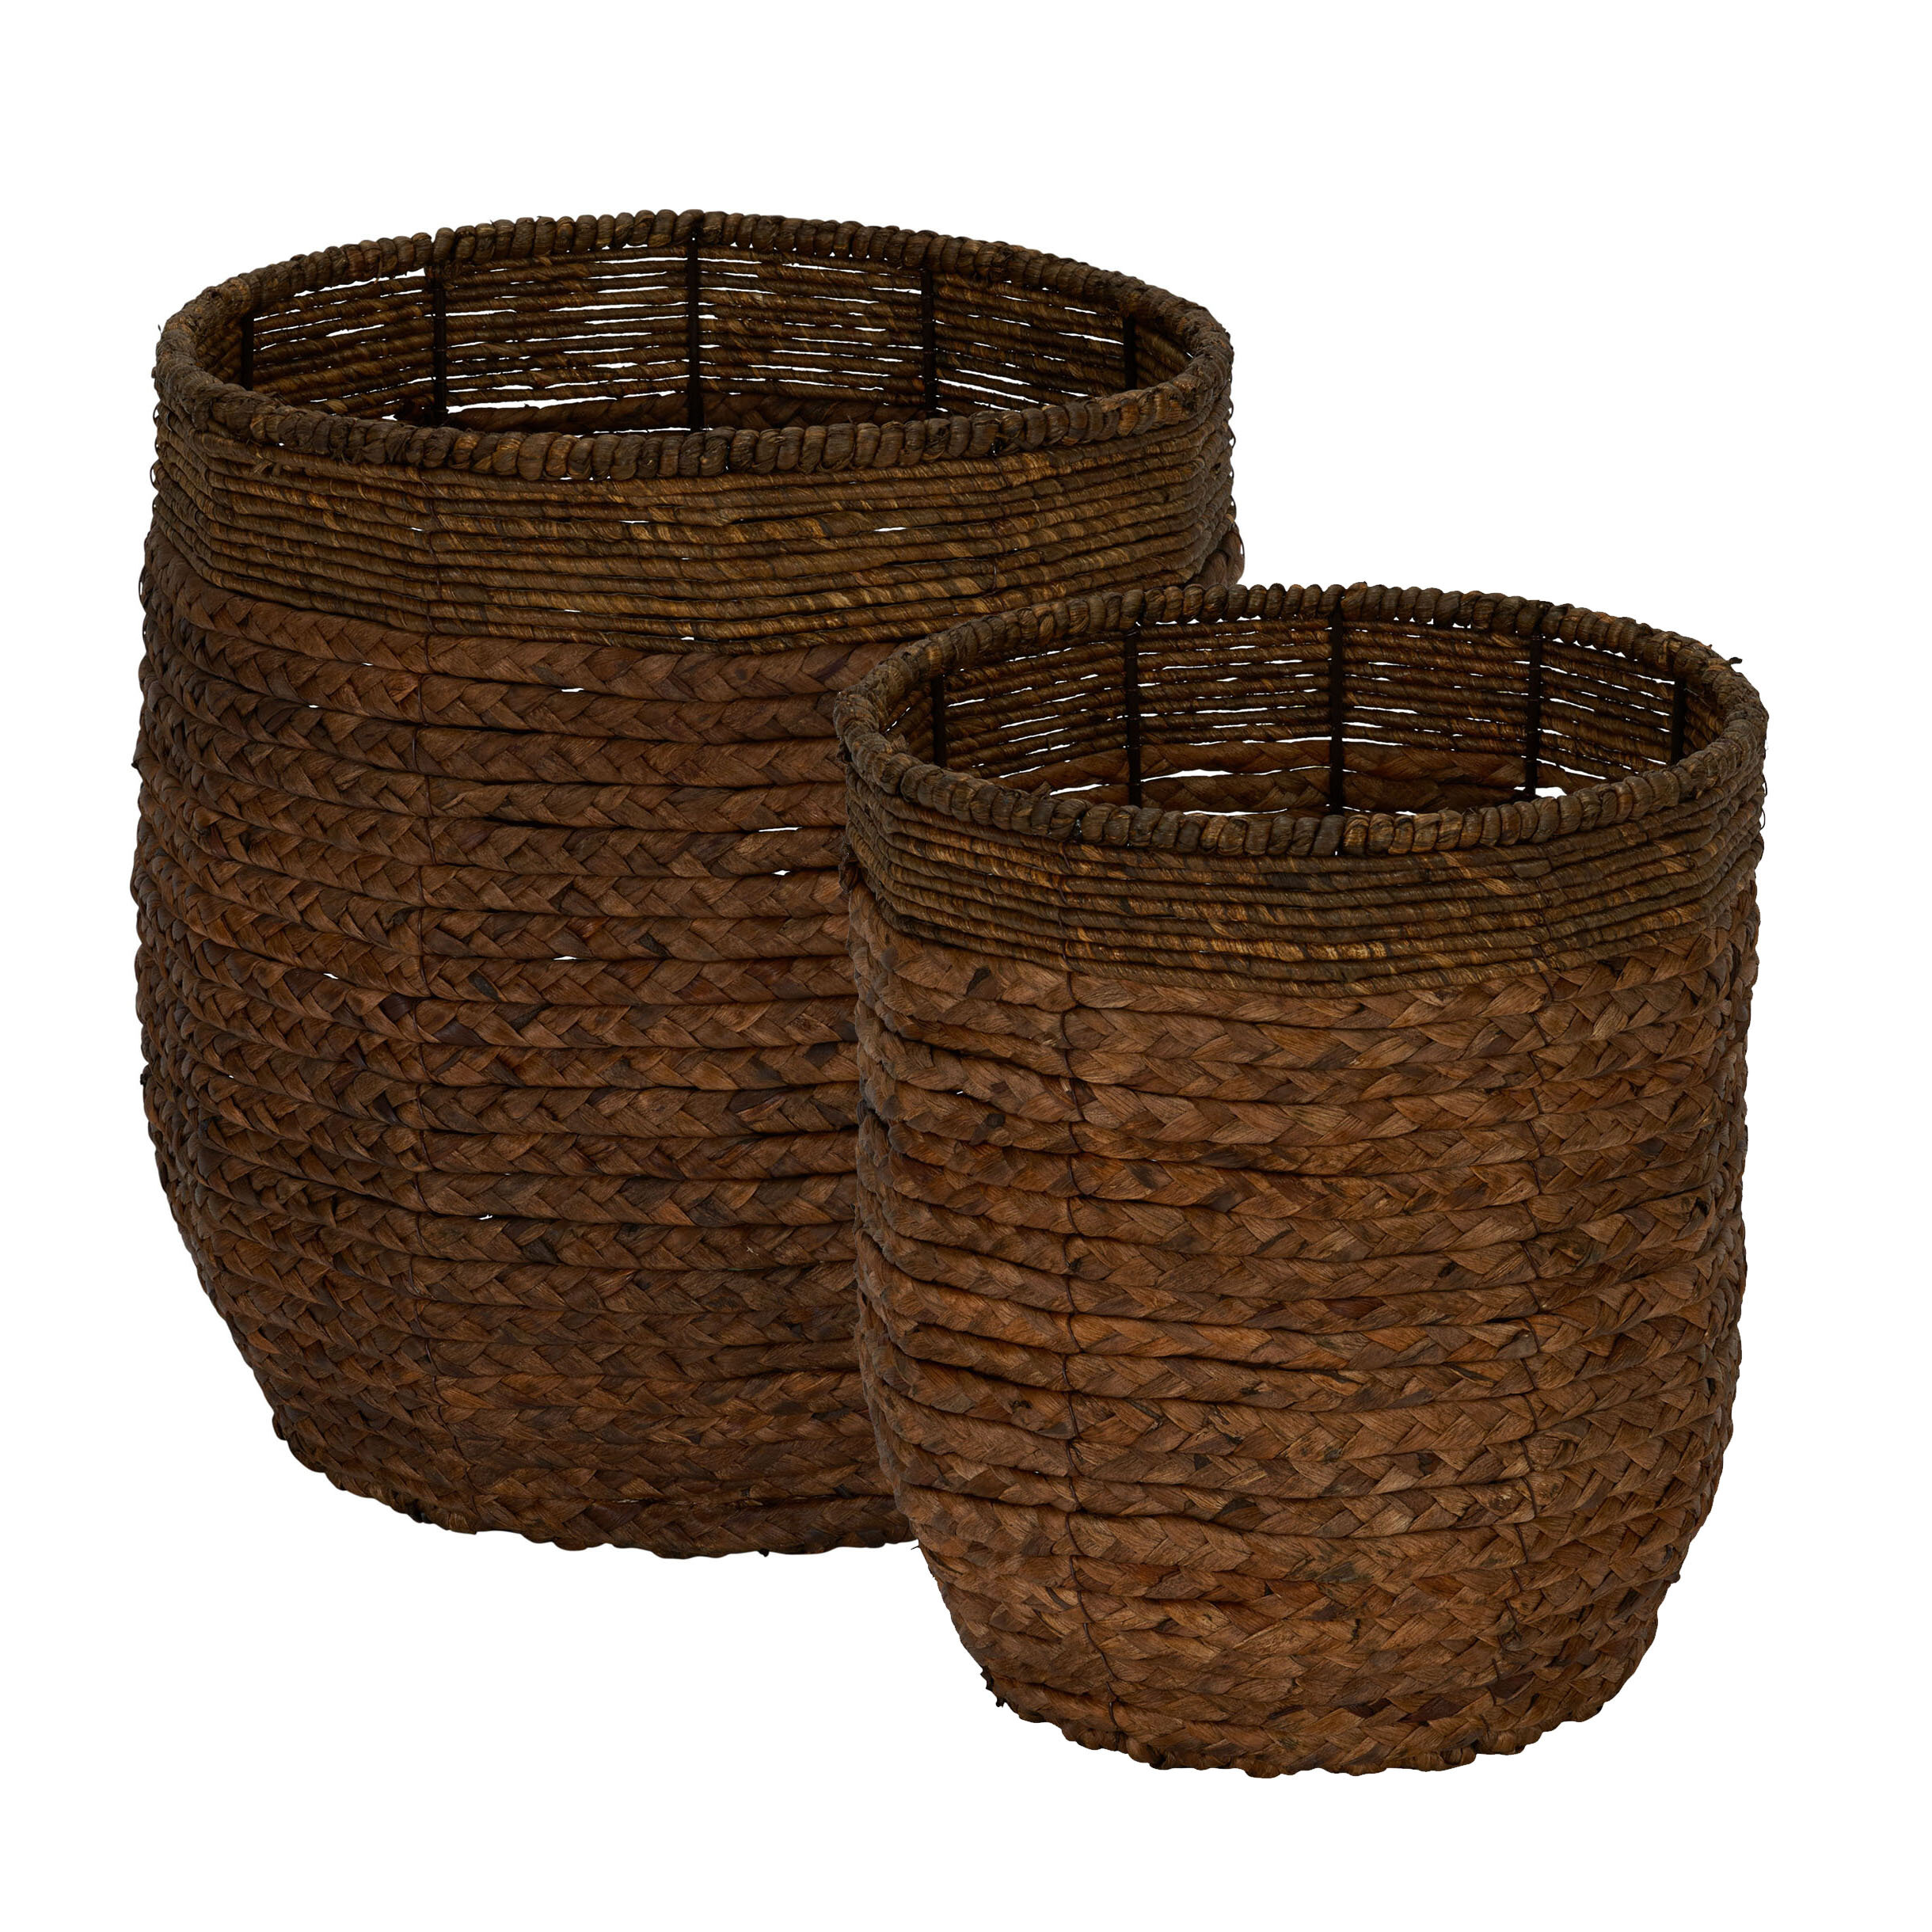 Tremendous Water Hyacinth Round Rimmed Wicker 2 Piece Basket Set Ncnpc Chair Design For Home Ncnpcorg